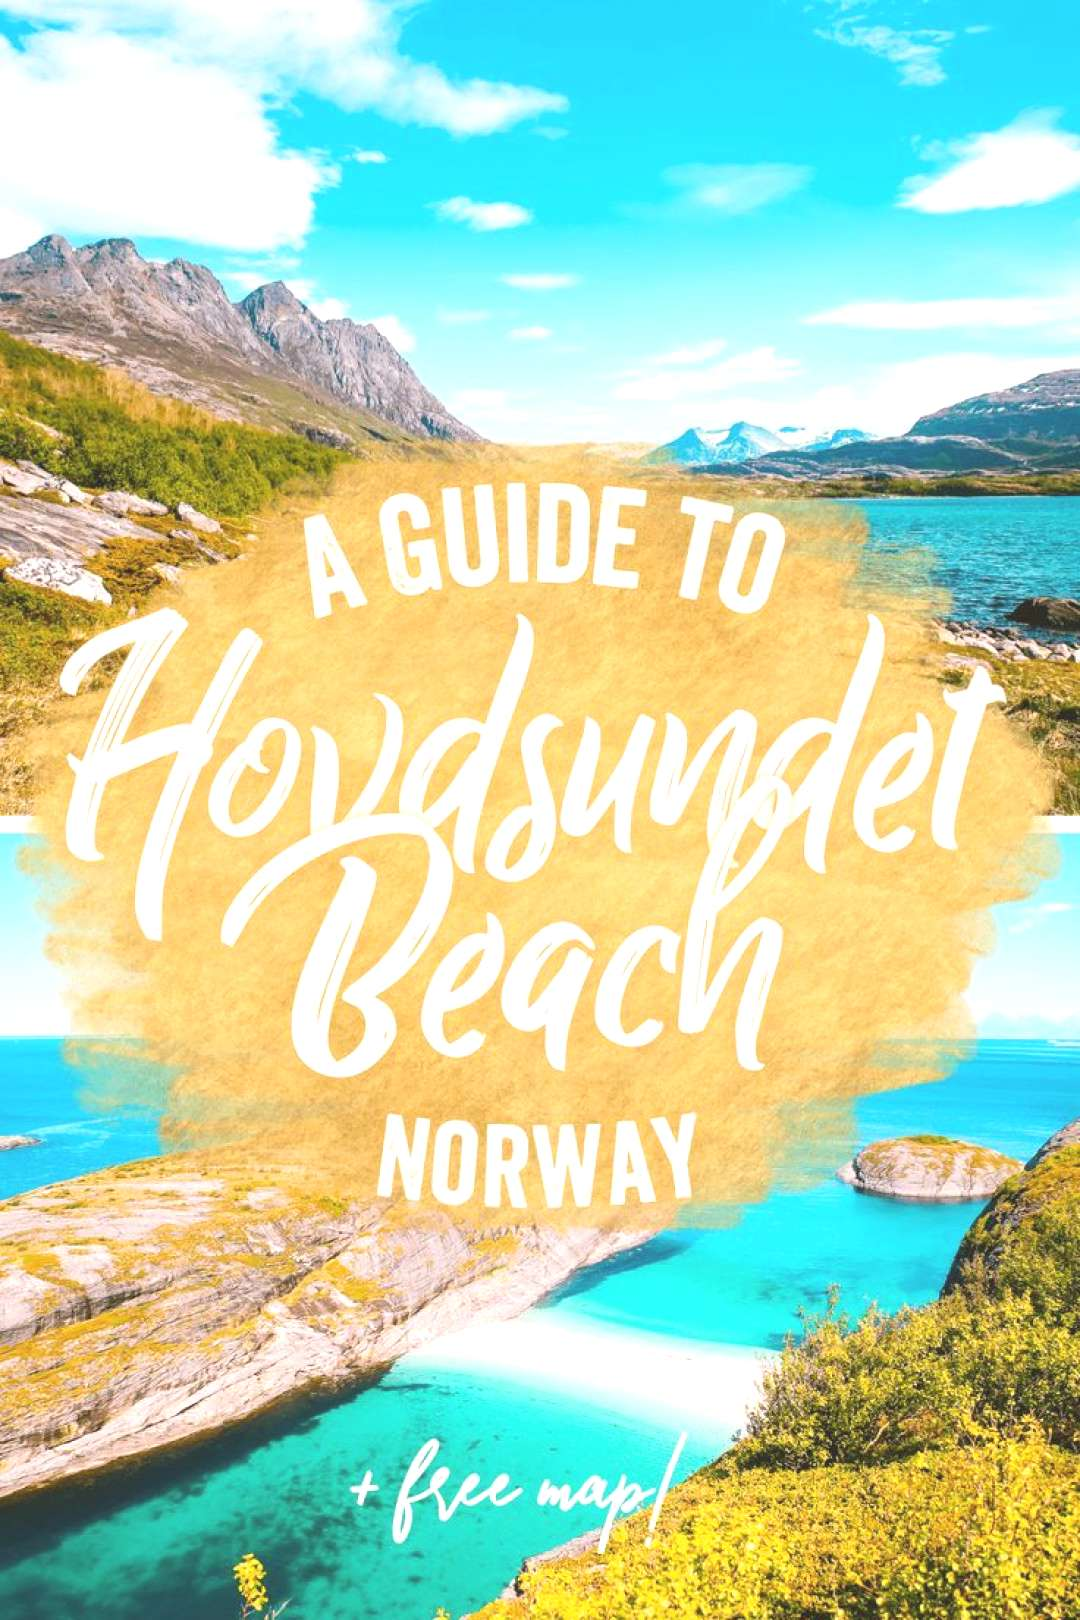 A Guide To Hovdsundet Beach A Guide To Hovdsundet Beach, Norway. Hiking to Hovdsundet Beach is a mu